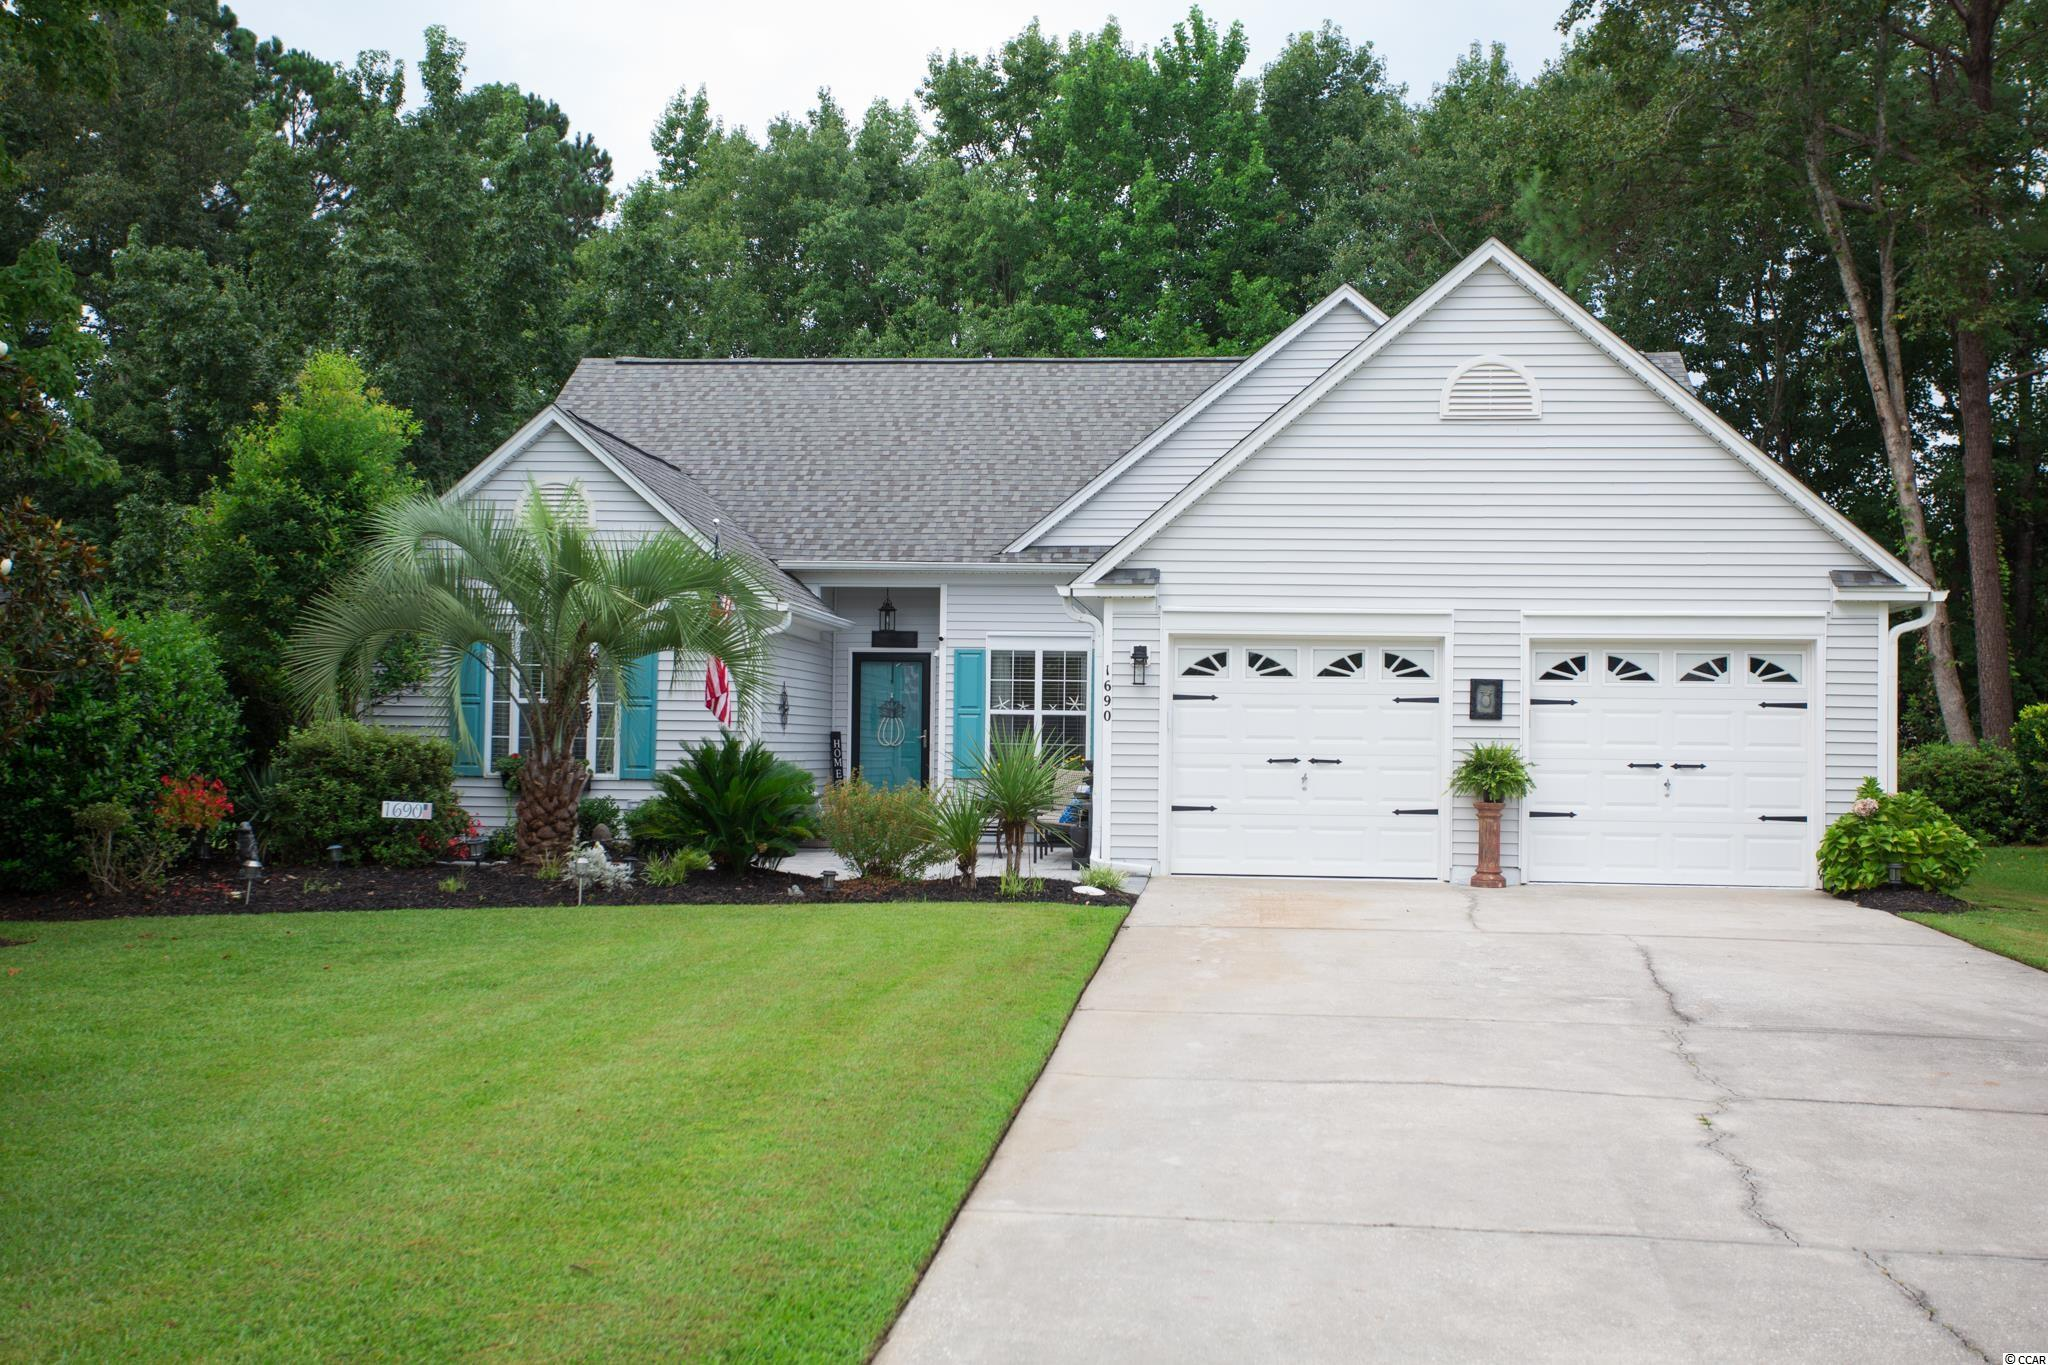 It's A Beauty! Private, serene and Oh What a View! Enjoy the best of Murrells Inlet living in this spacious 3 bedroom, 2 bath home with wonderful views of the pond across the street from the stunning front courtyard in the sought after Indigo Creek Golf Plantation community.   Attention to detail and pride of ownership are immediately apparent in this impeccably maintained home, just a short walk to the Indigo Creek Golf Course clubhouse.  Situated on a lushly landscaped lot on a private street, this home has great curb appeal and sets the tone from the moment you drive up. Start with the welcoming front courtyard with new pavers, shutters, attractive entry door, lush landscaping with manicured lawn, pretty flower beds and mature landscaping.  This is sure to be a favorite spot to enjoy those evening Carolina breezes and the wonderful views of the pond with sitting area.  Freshly painted with open floor plan with the living room open to the kitchen with stunning luxury vinyl plank (LVP) flooring and quality throughout.  Cathedral ceilings in living & family rooms, kitchen and master bedroom, create an open and airy feel while the crown molding and neutral colors of the walls will make you feel right at home.  Entertaining will be easy in this home with its living room, family/Carolina room, spacious kitchen and formal dining room. Living room with vaulted ceiling, attractive fan and windows bringing in lots of natural light.  Gourmet kitchen with new LG stainless steel French door refrigerator, range and microwave, cream cabinets, walk-in pantry, granite countertops, coffee and breakfast bar, pendant lighting and decorative plant shelving.    Formal dining room with crown molding will be the perfect spot for hosting holiday meals and more formal events.  Split bedroom plan with spacious master bedroom with vaulted ceiling, walk-in closet, ceiling fan and windows overlooking the backyard.  Master bath with garden tub, separate walk-in shower, updated vanity with new 